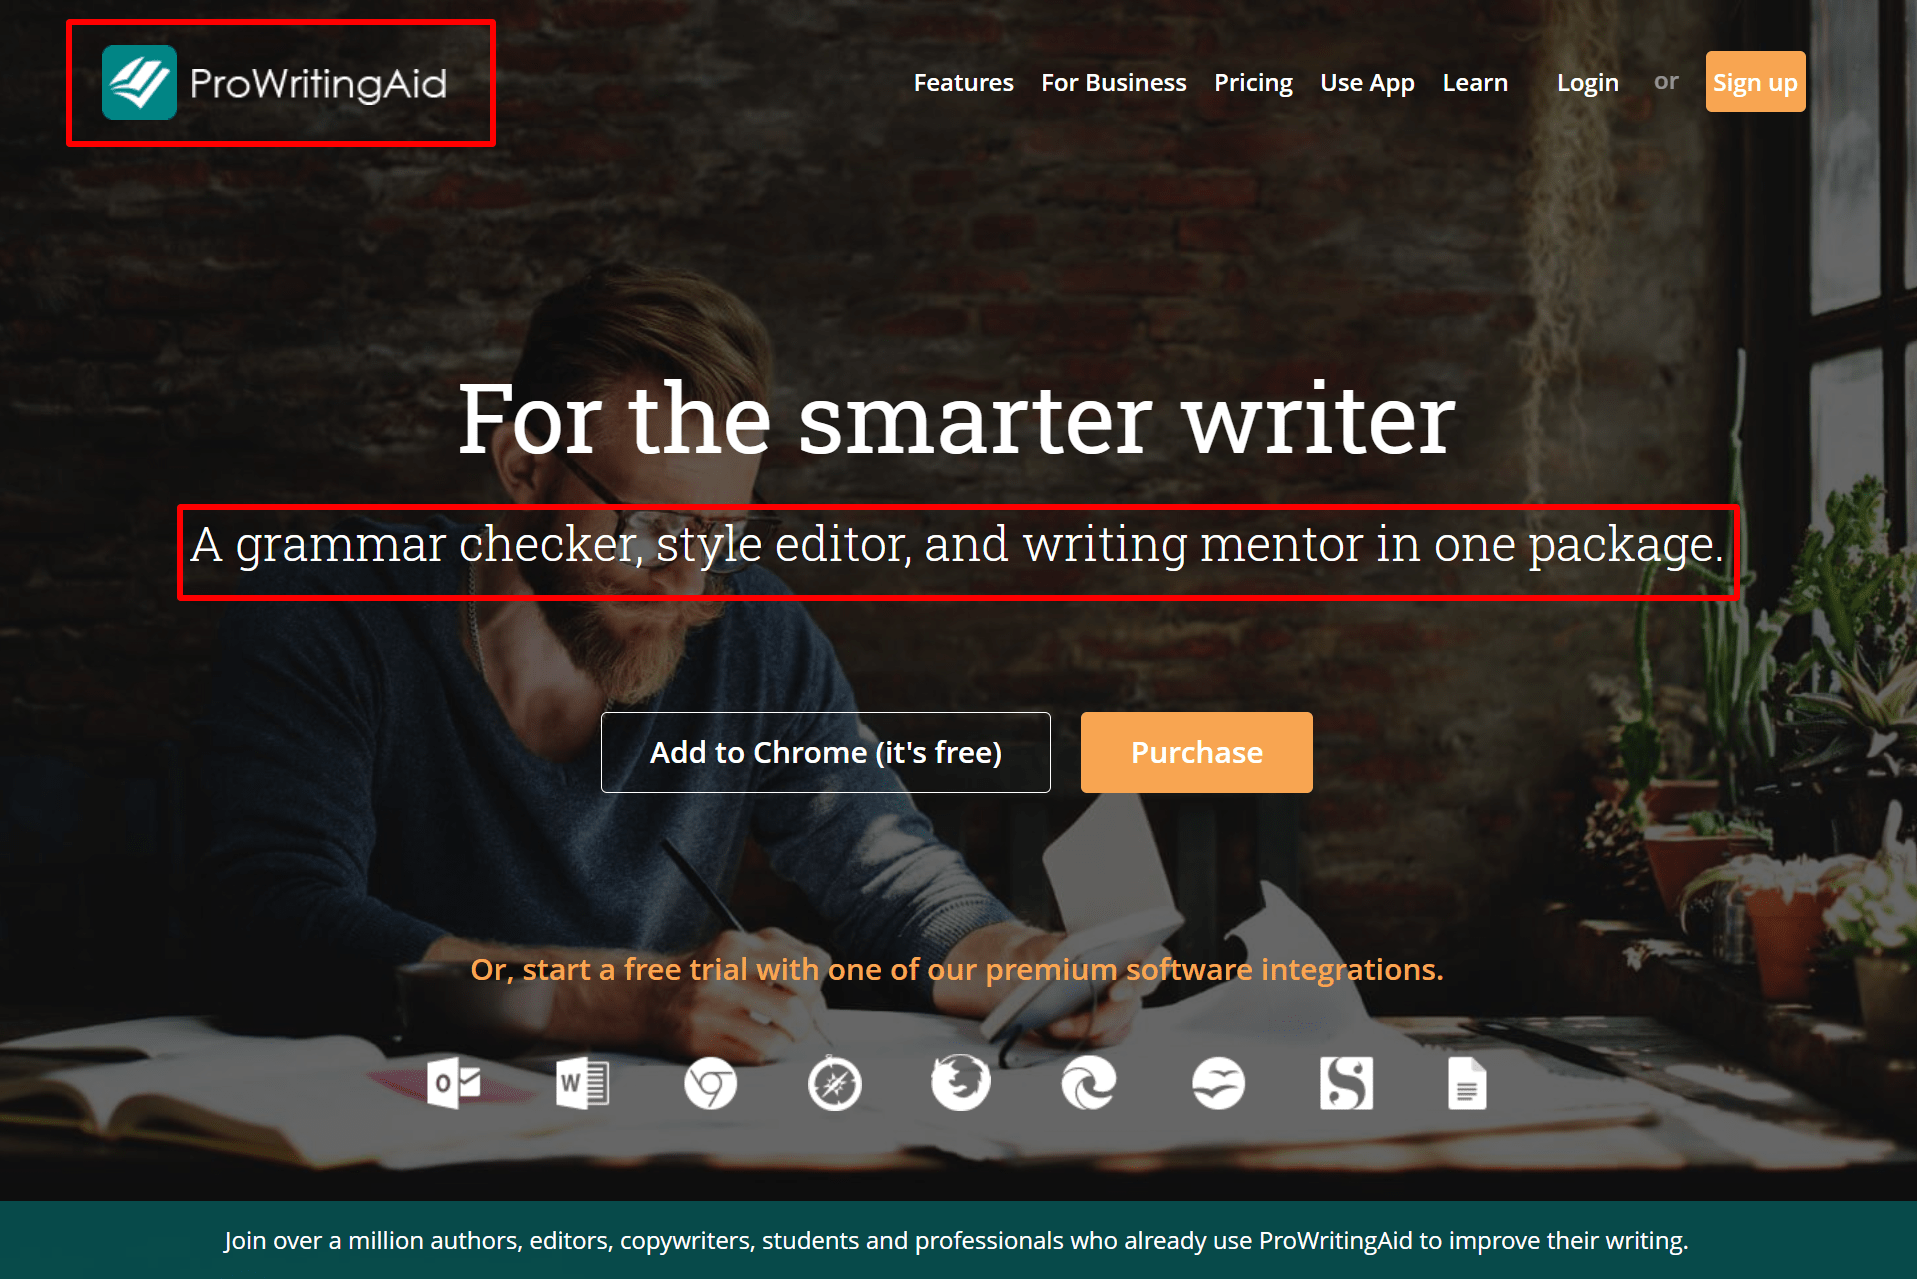 ProWritingAid-the-best-grammar-checker-style-editor-and-editing-tool-in-one-package-